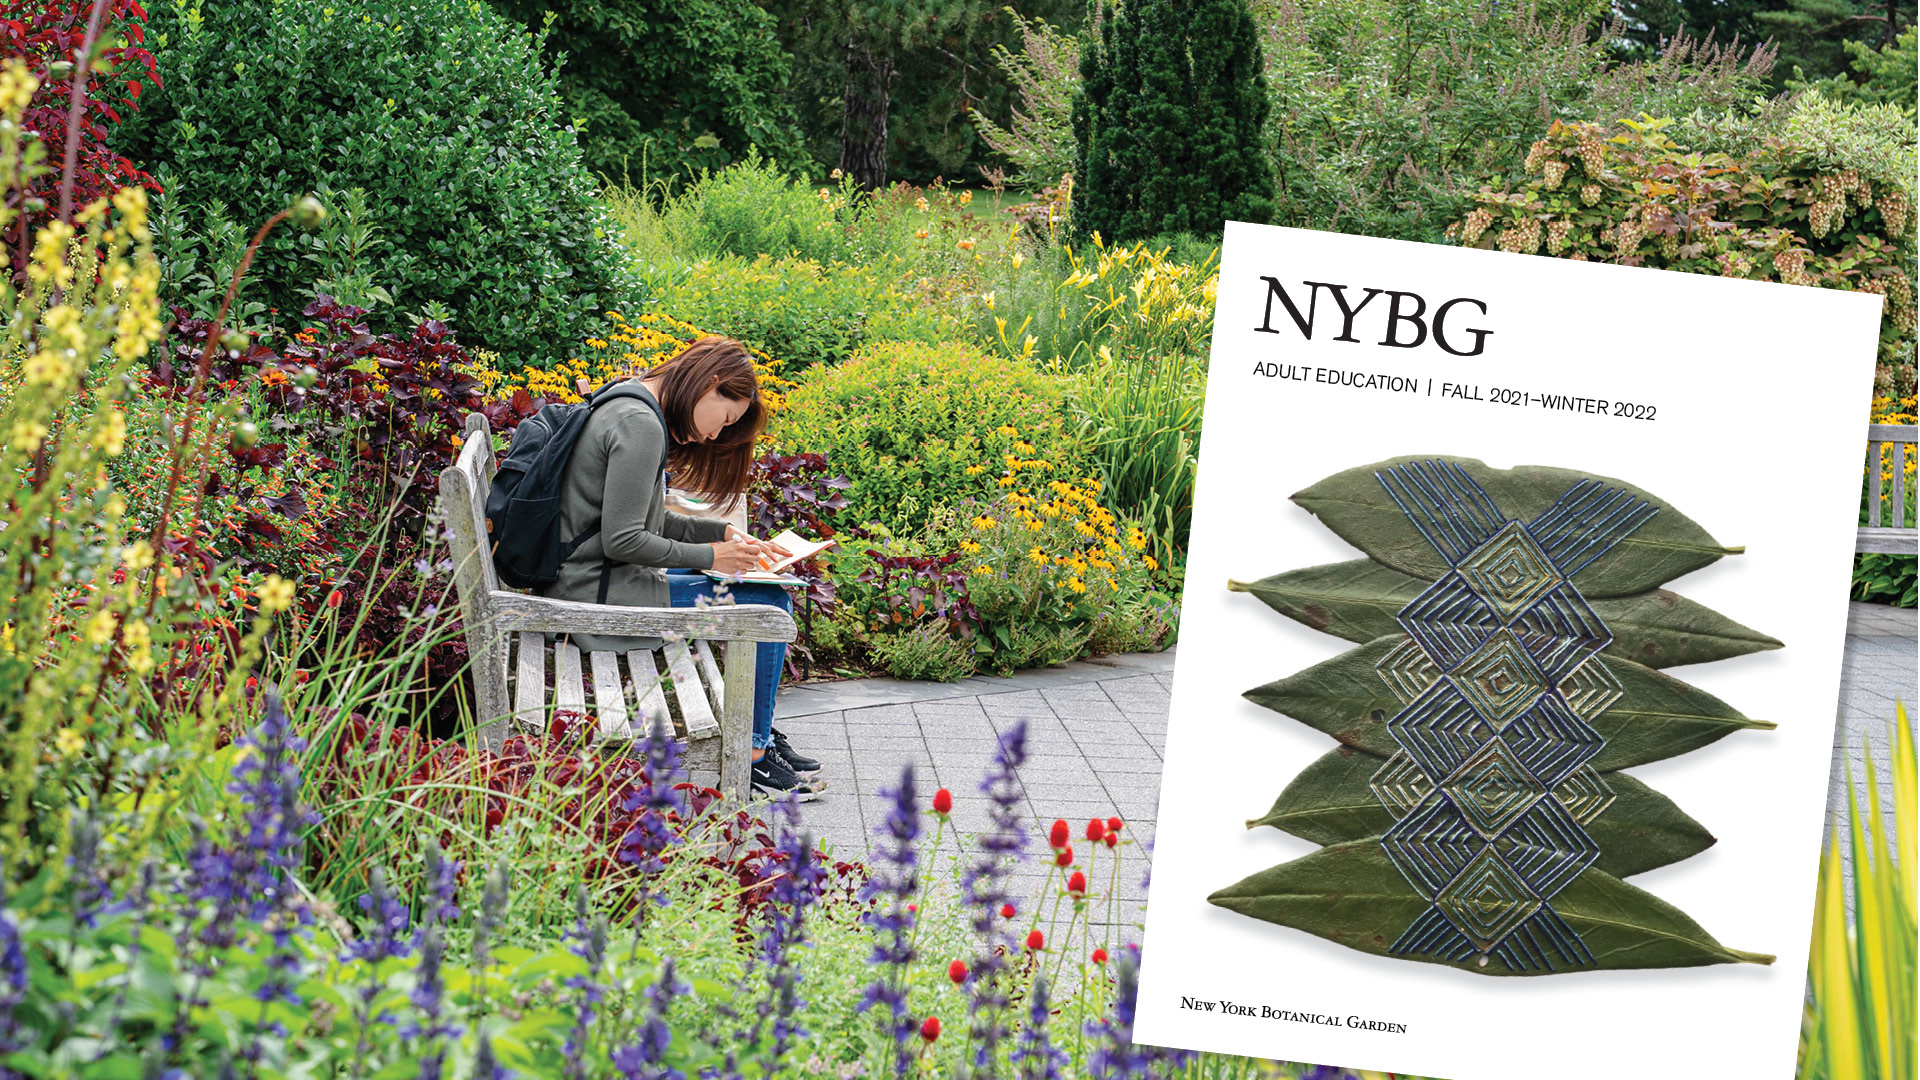 An image of a catalog cover featuring embroidered designs on leaves is superimposed on another image of a visitor examines a handful of papers while seated on a bench among bushes and a variety of flowers.